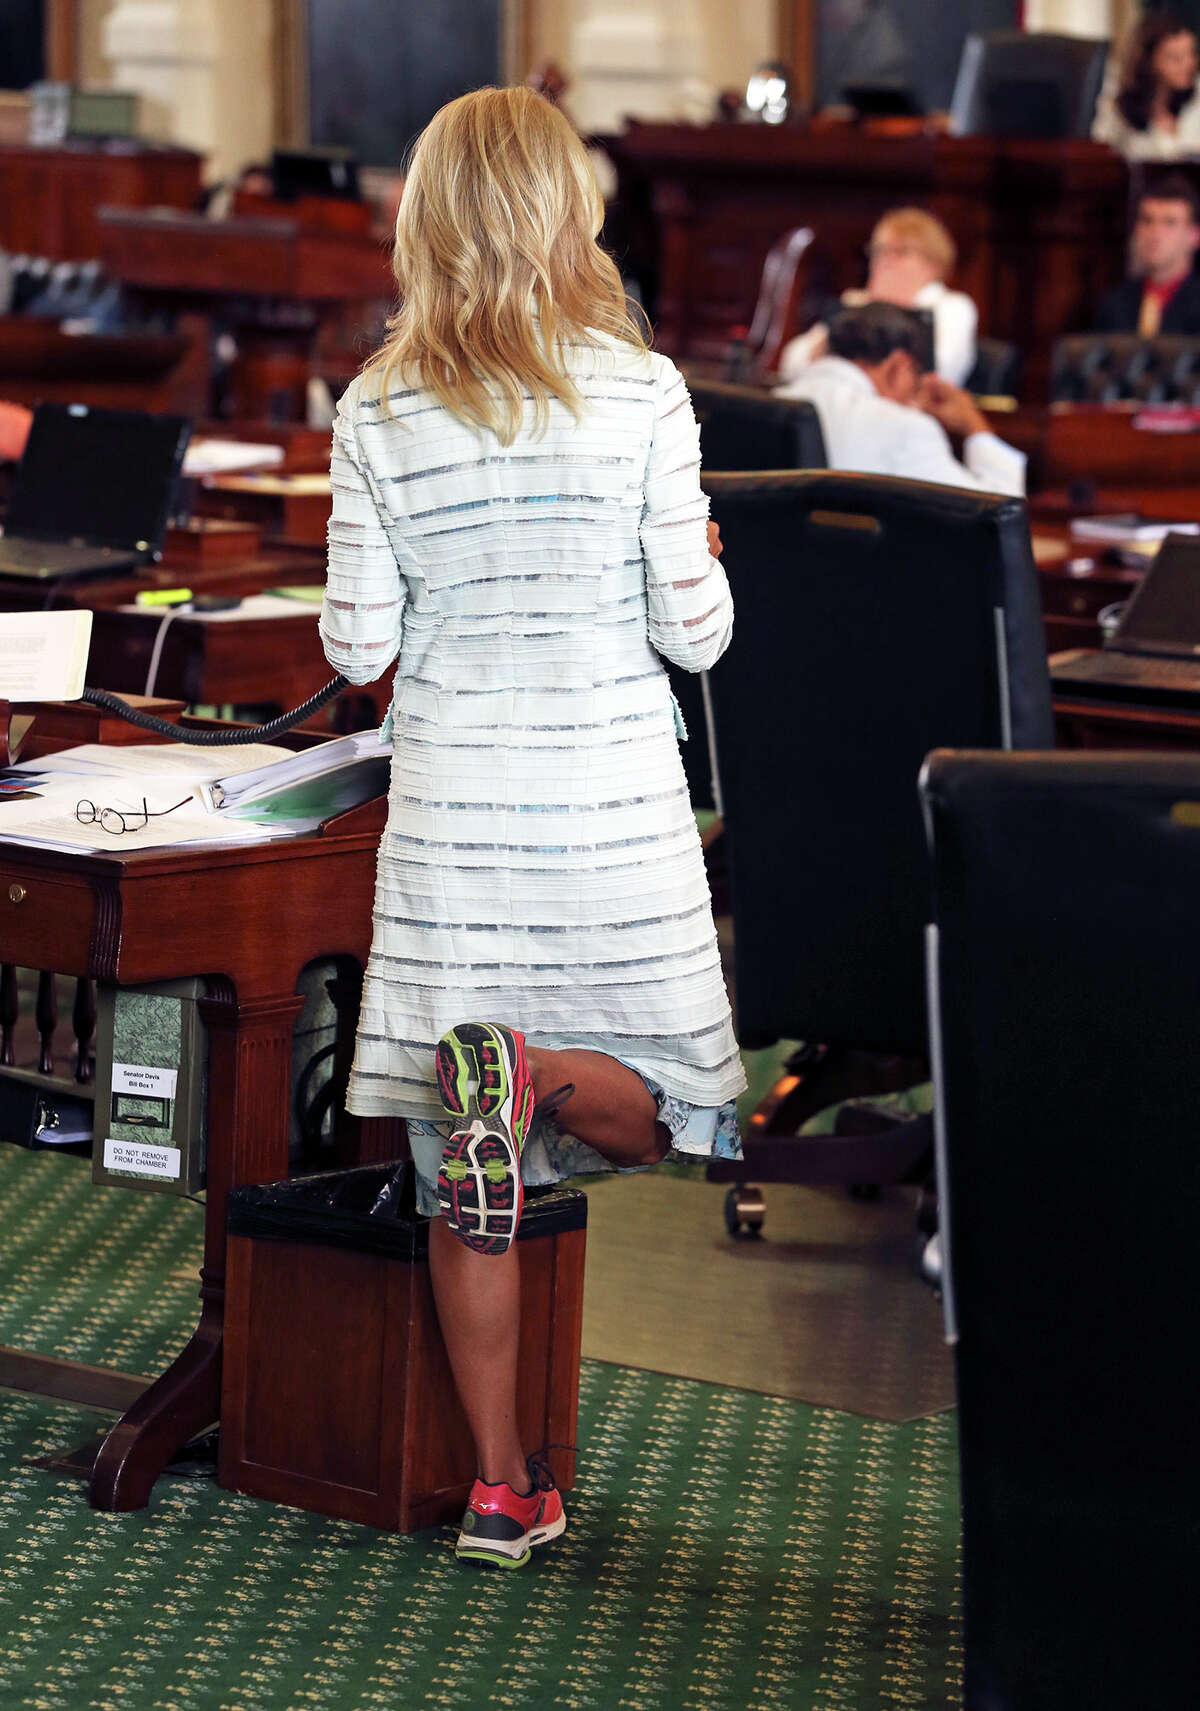 State Sen. Wendy Davis rests one foot during her 11-hour filibuster Tuesday.